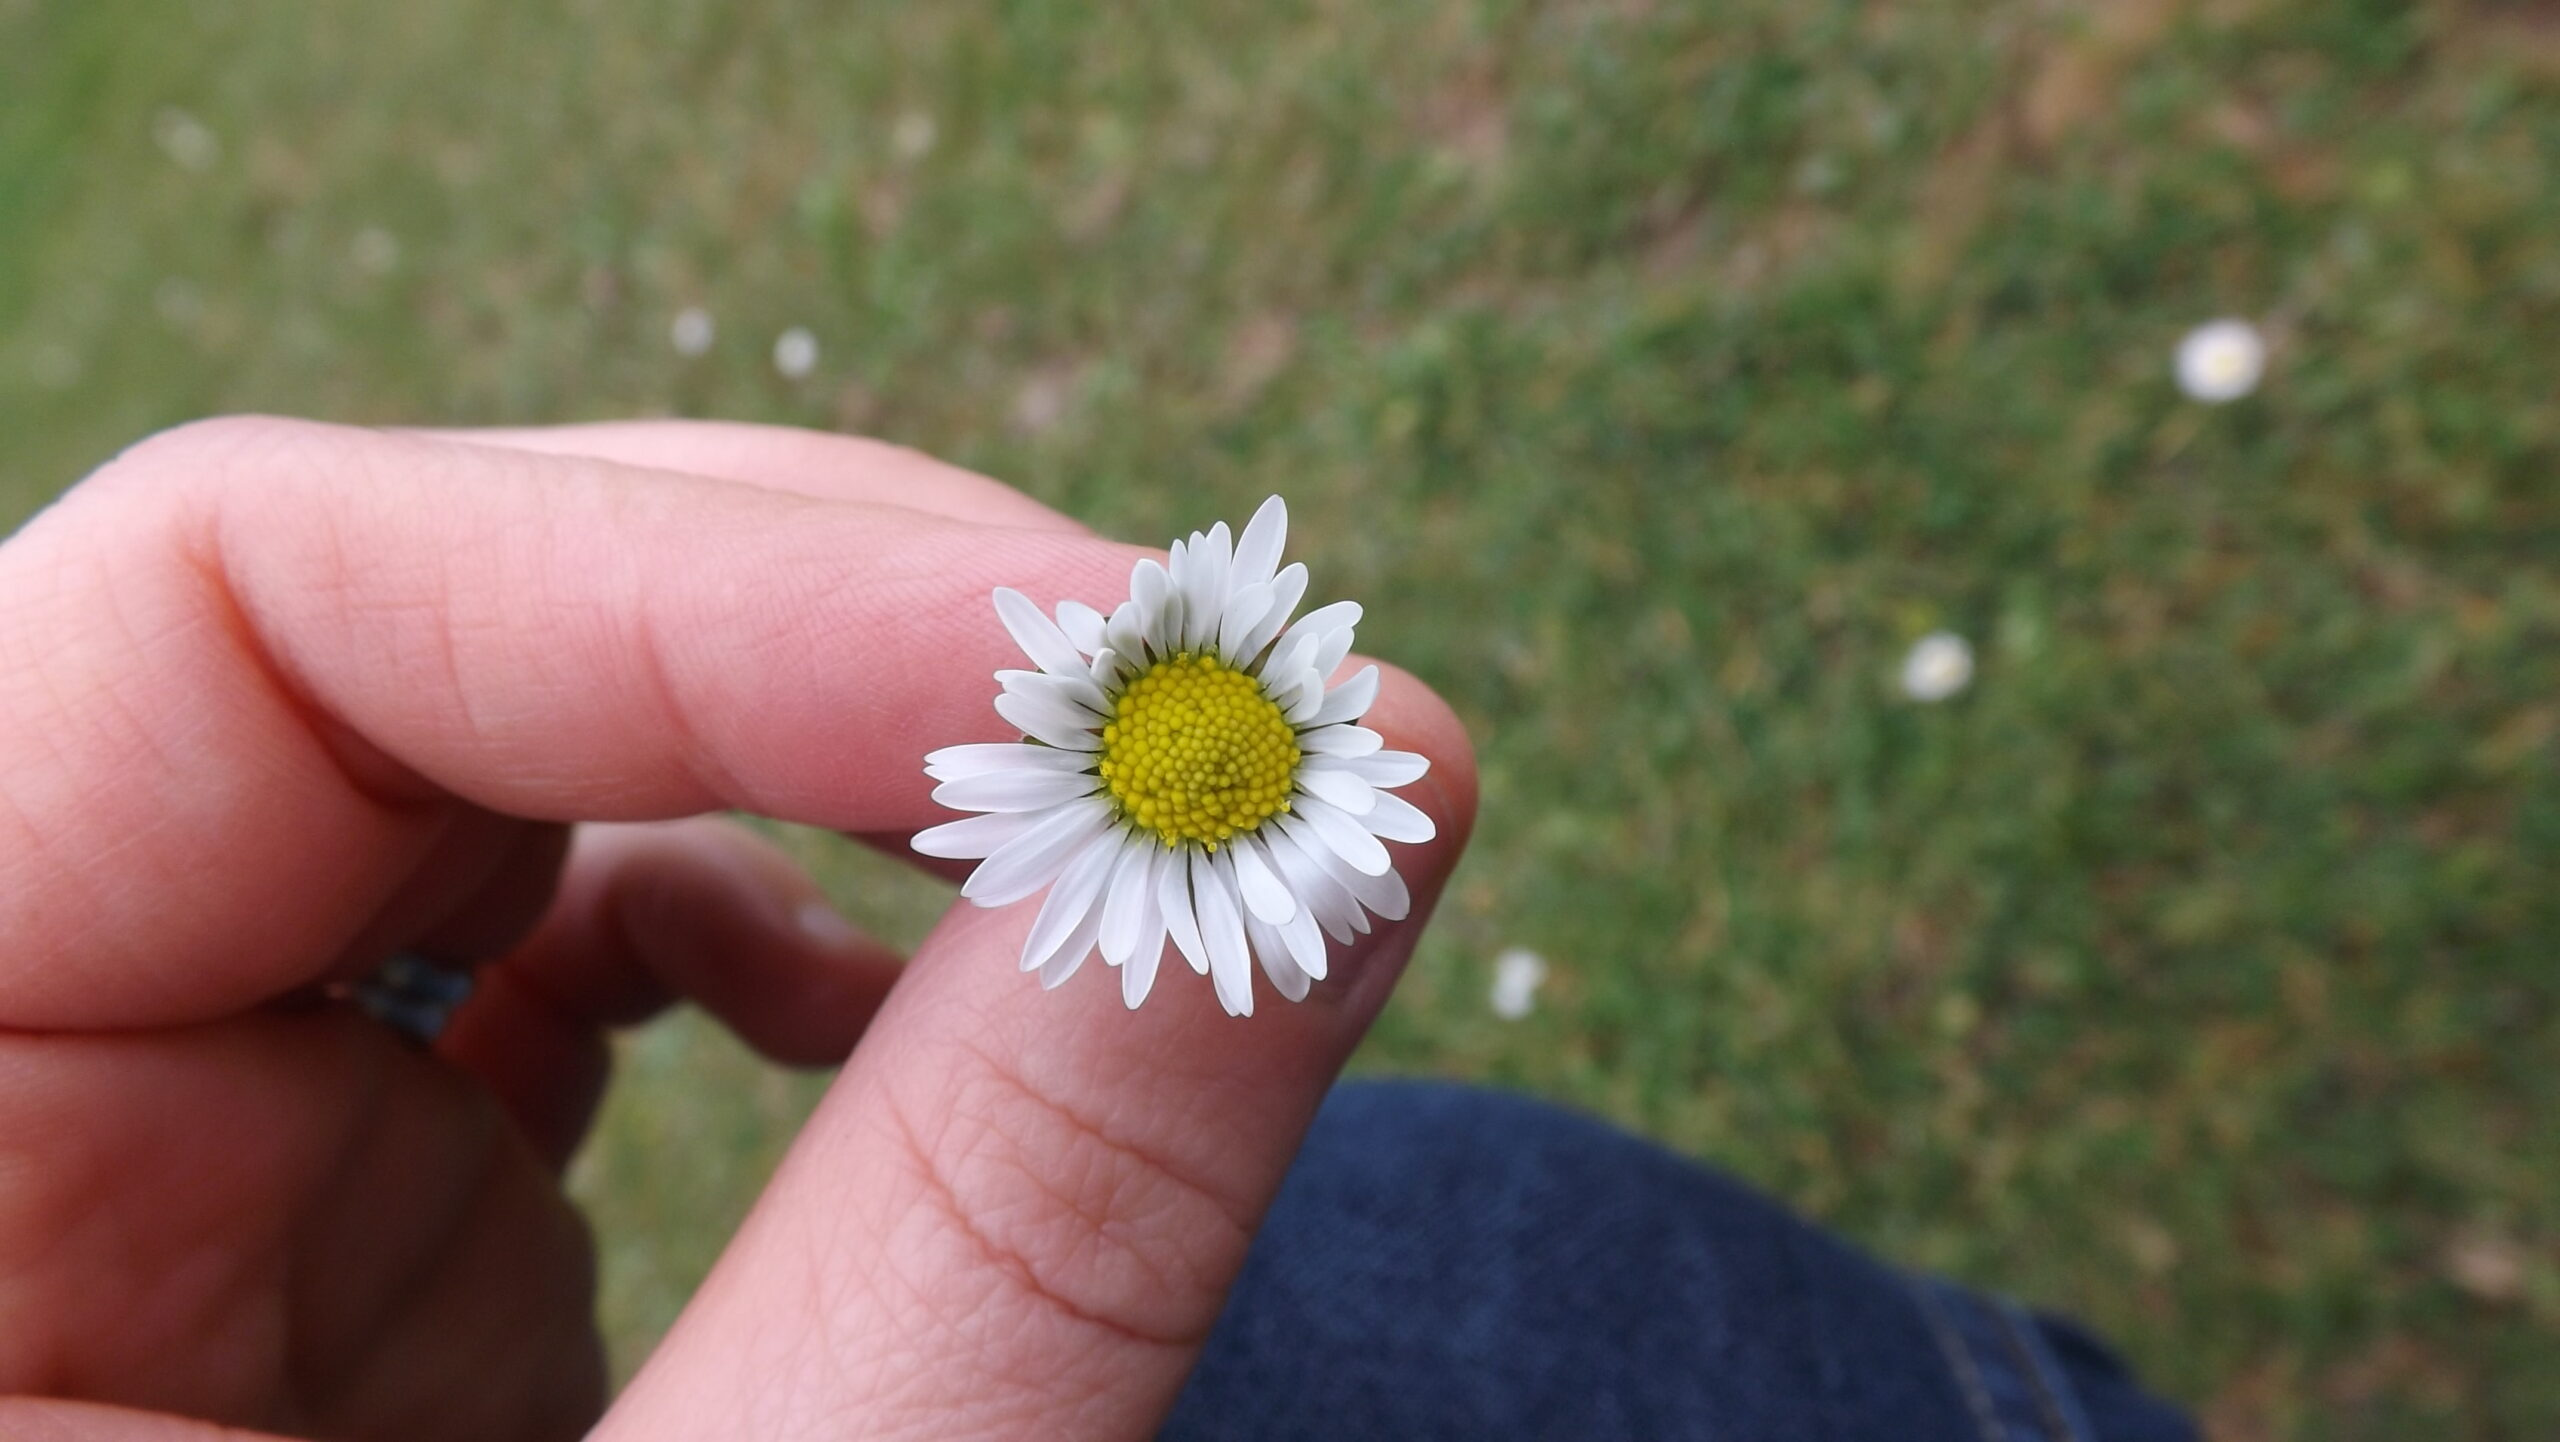 Daisy in spring being held